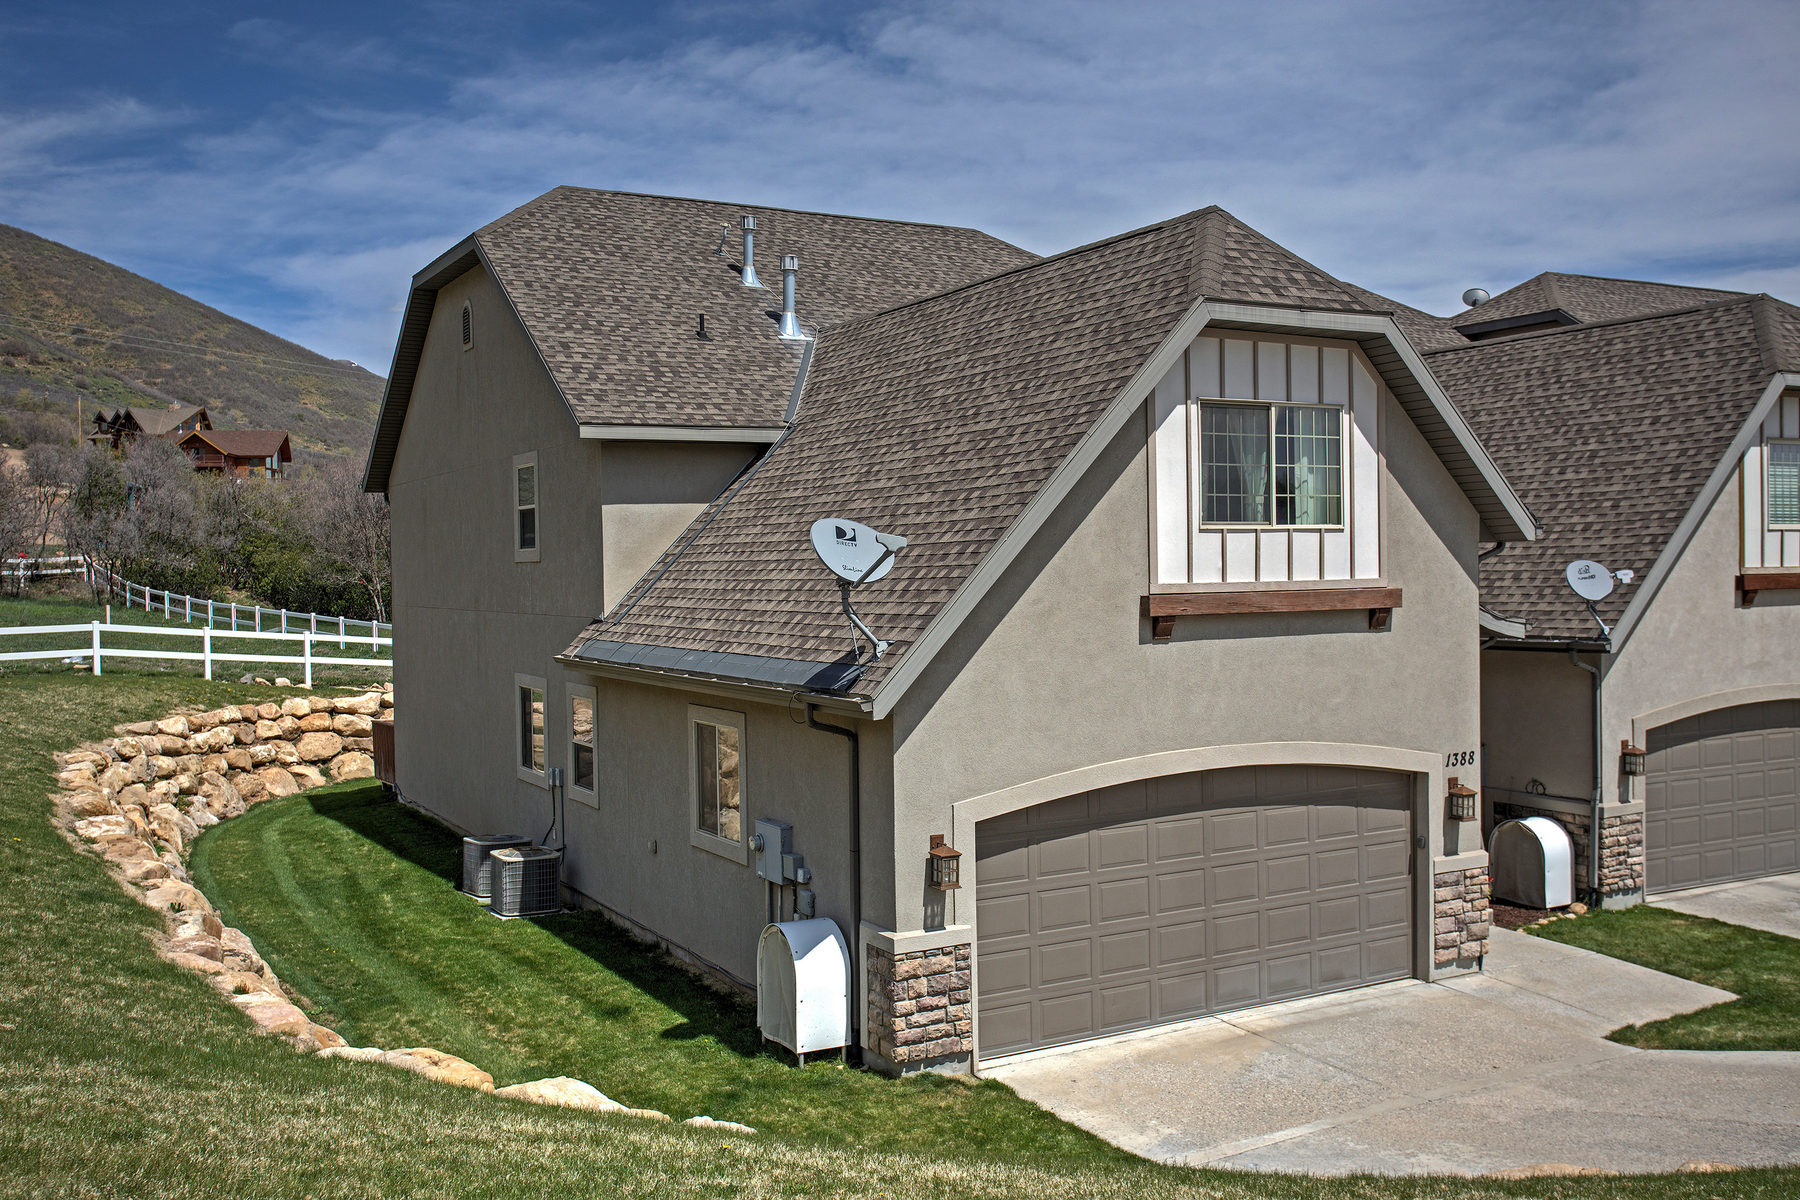 Townhouse for Sale at Above it All in Midway 1388 West 365 North Midway, Utah, 84049 United States